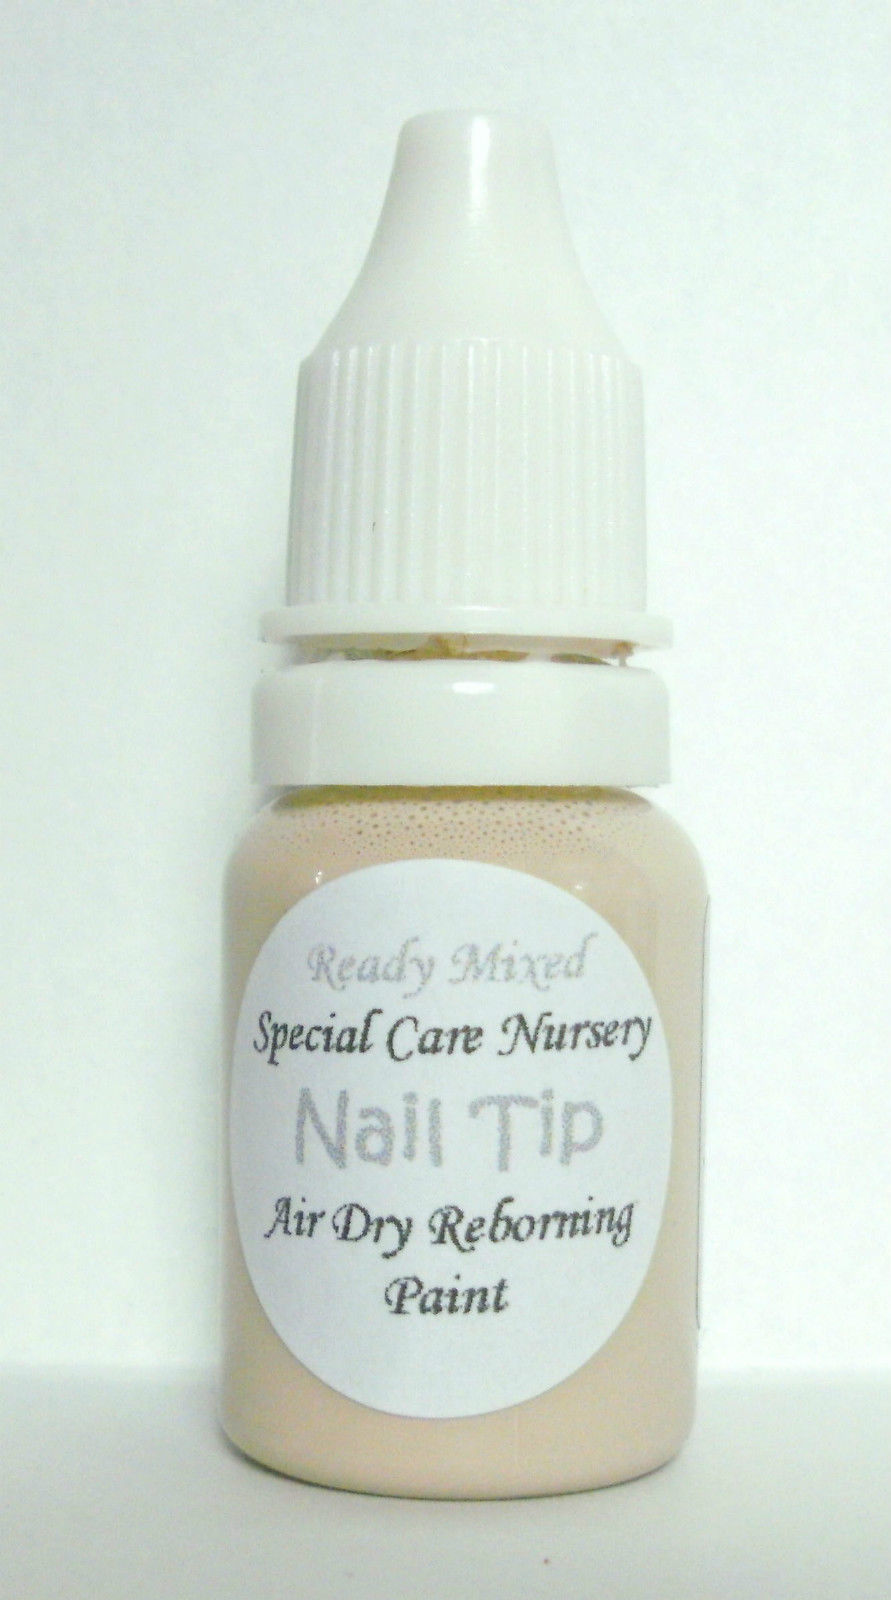 Special Care Nursery Air dry paints - * The Detailing paints* - 10ml Nail T